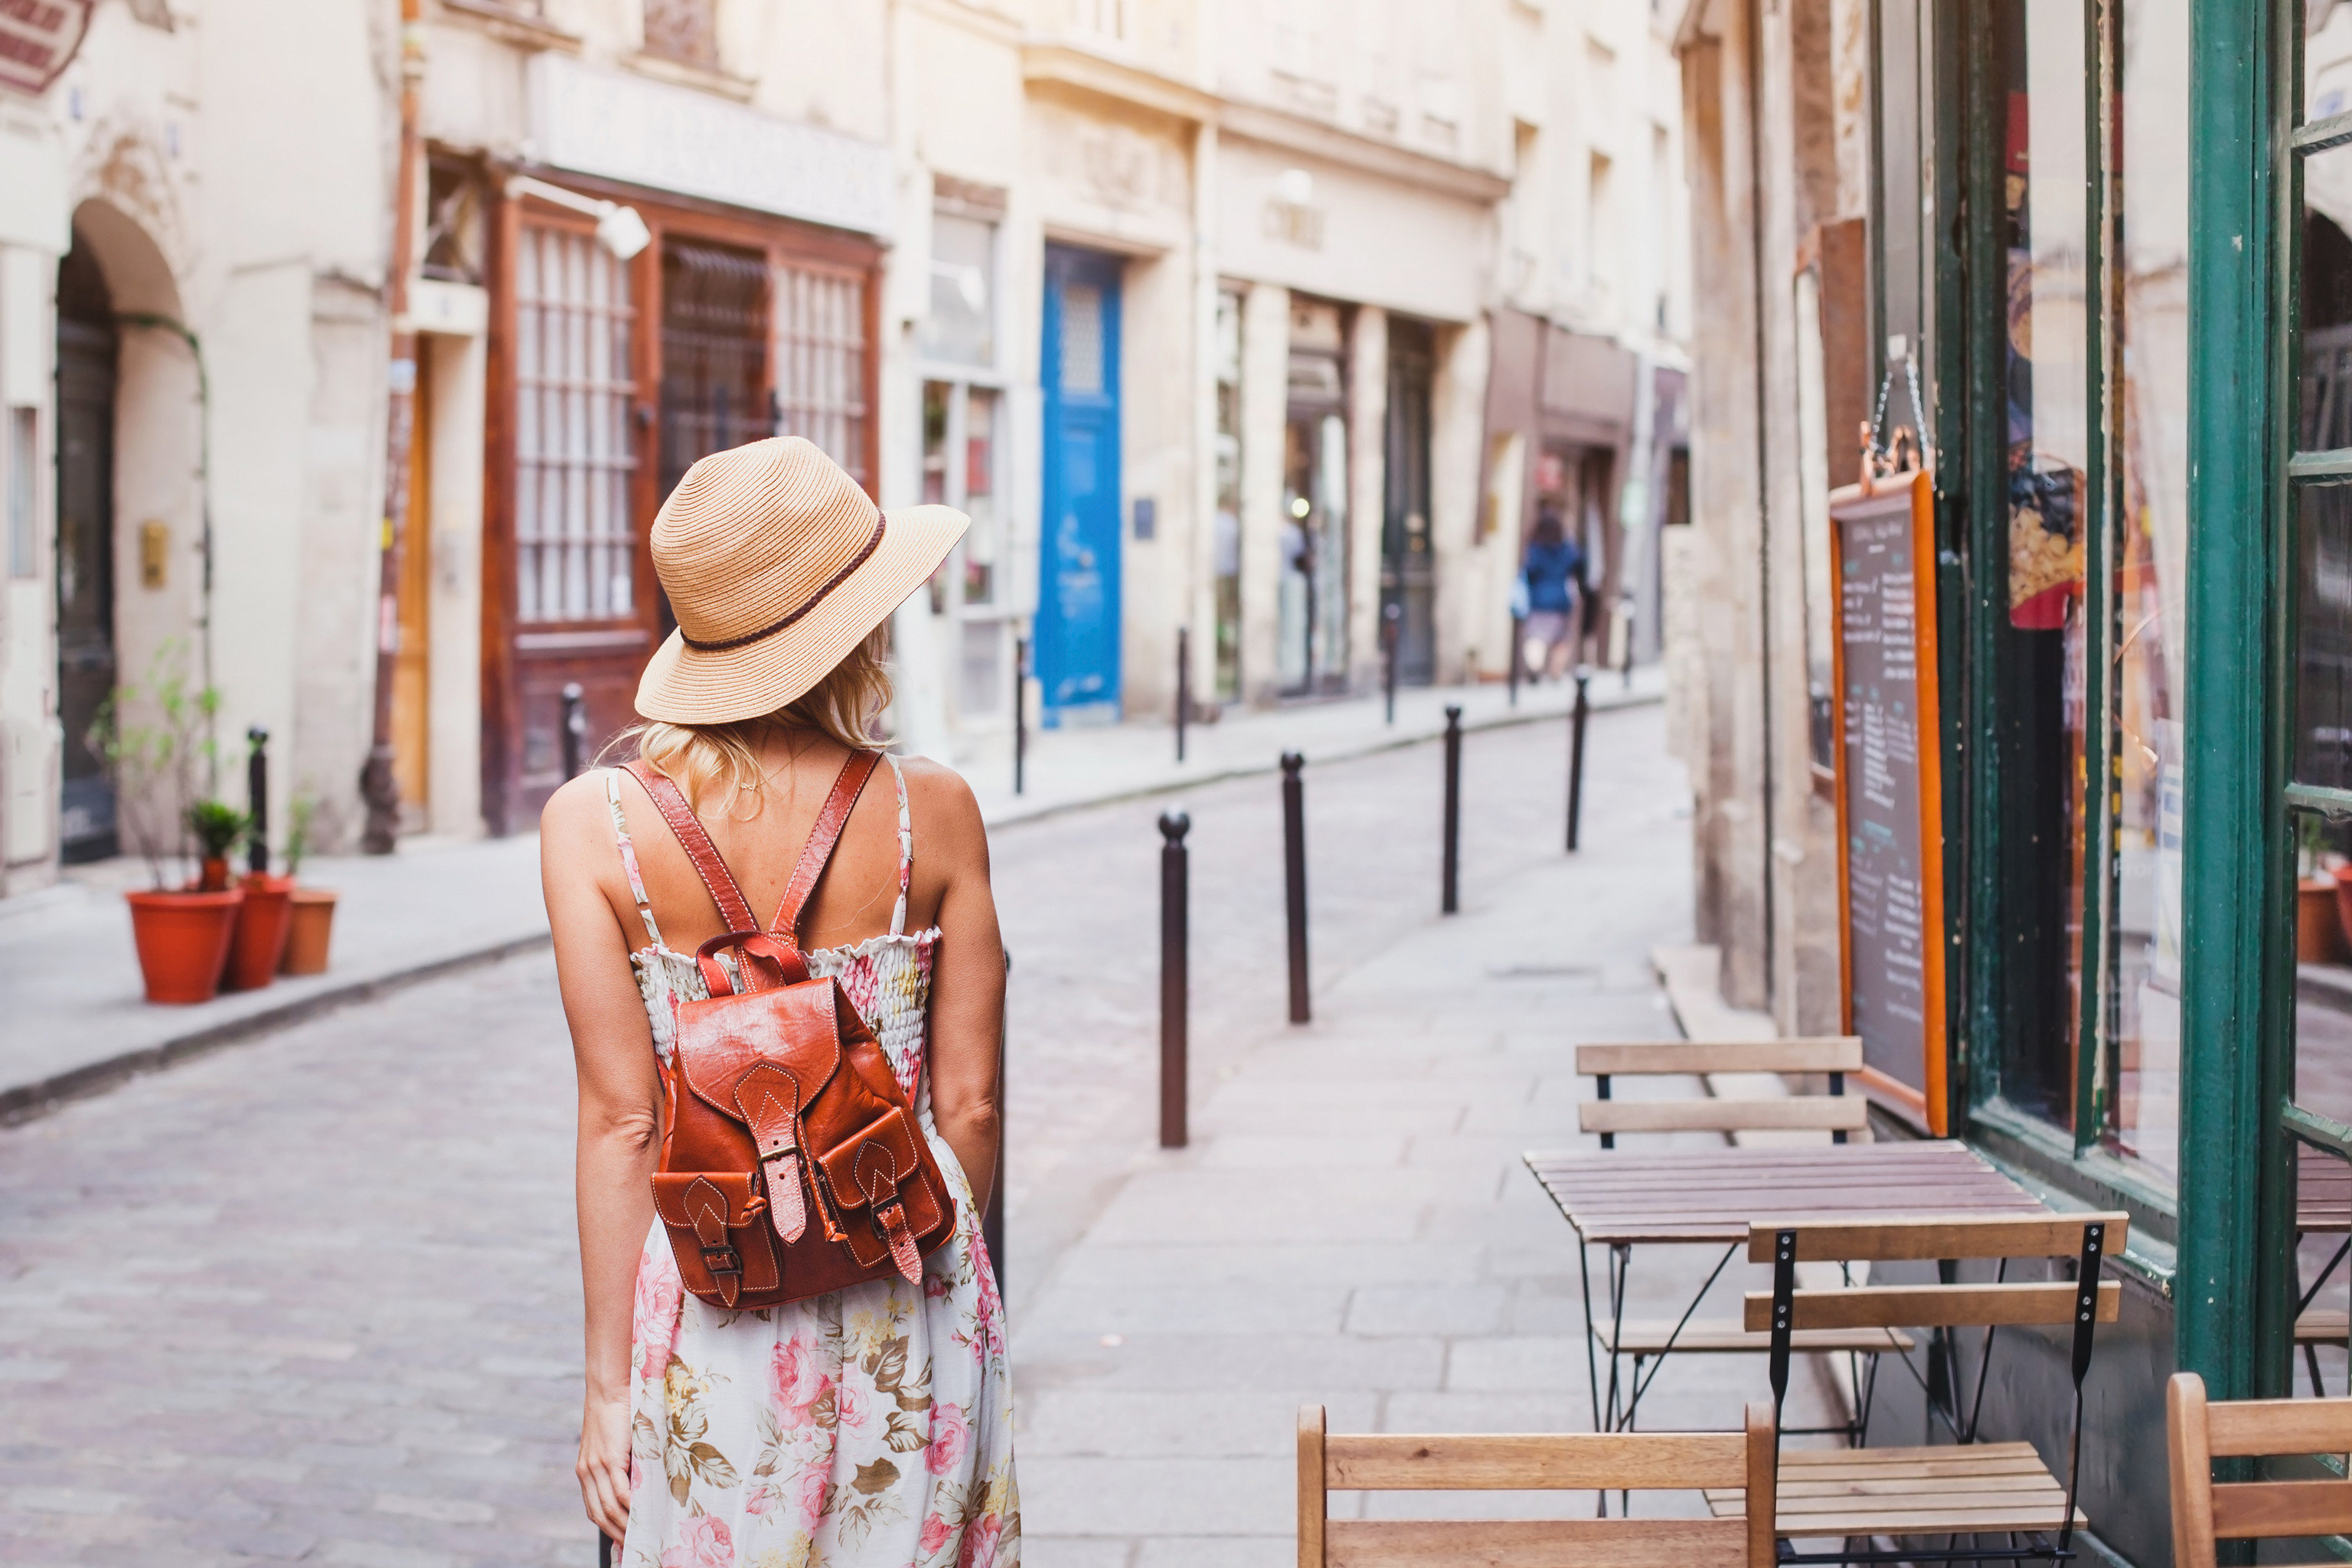 Hotels Style + Design Trip Ideas building outdoor ground person color photograph clothing road way street sidewalk spring season scene art infrastructure shopping